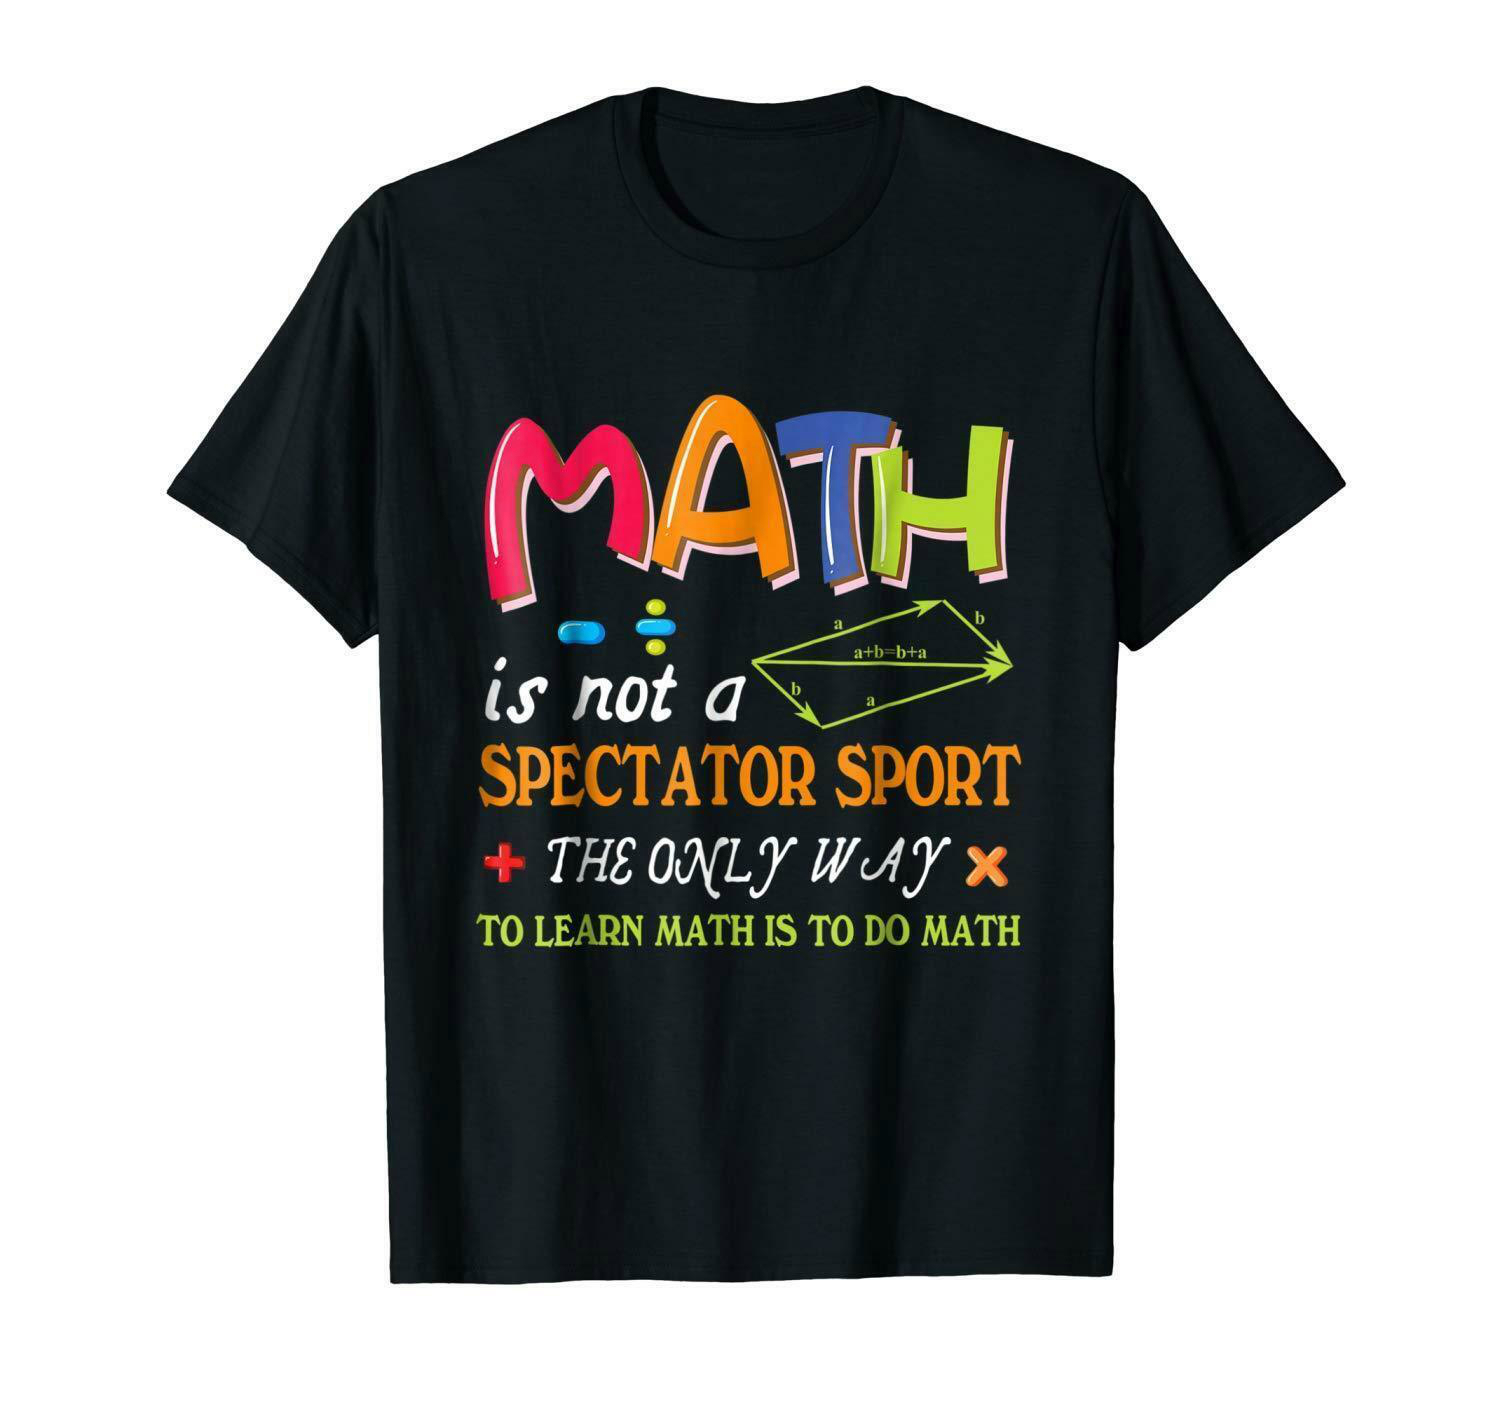 Math Is Not Spectator Sports Only Way To Learn Math Is To Do Math Black T-Shirt For Men image